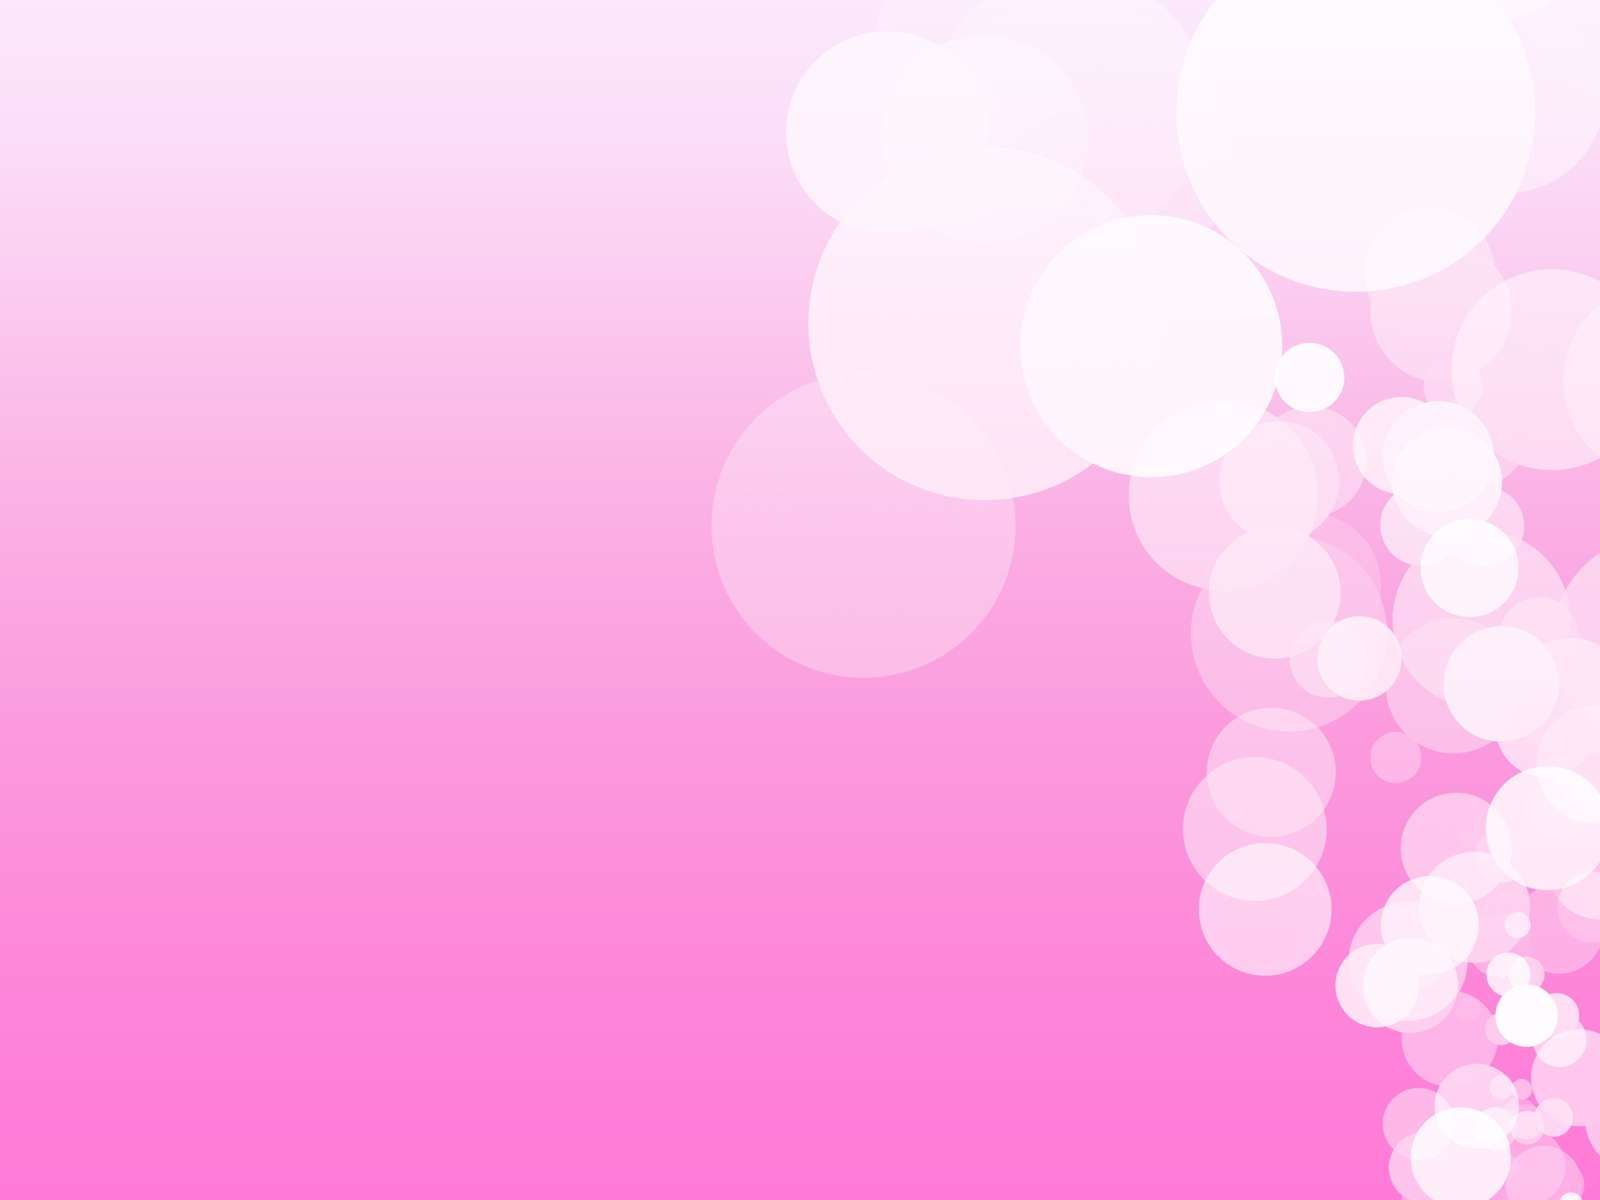 Beautiful Templates - Simple Floral Pink Lights Power Point Backgrounds,